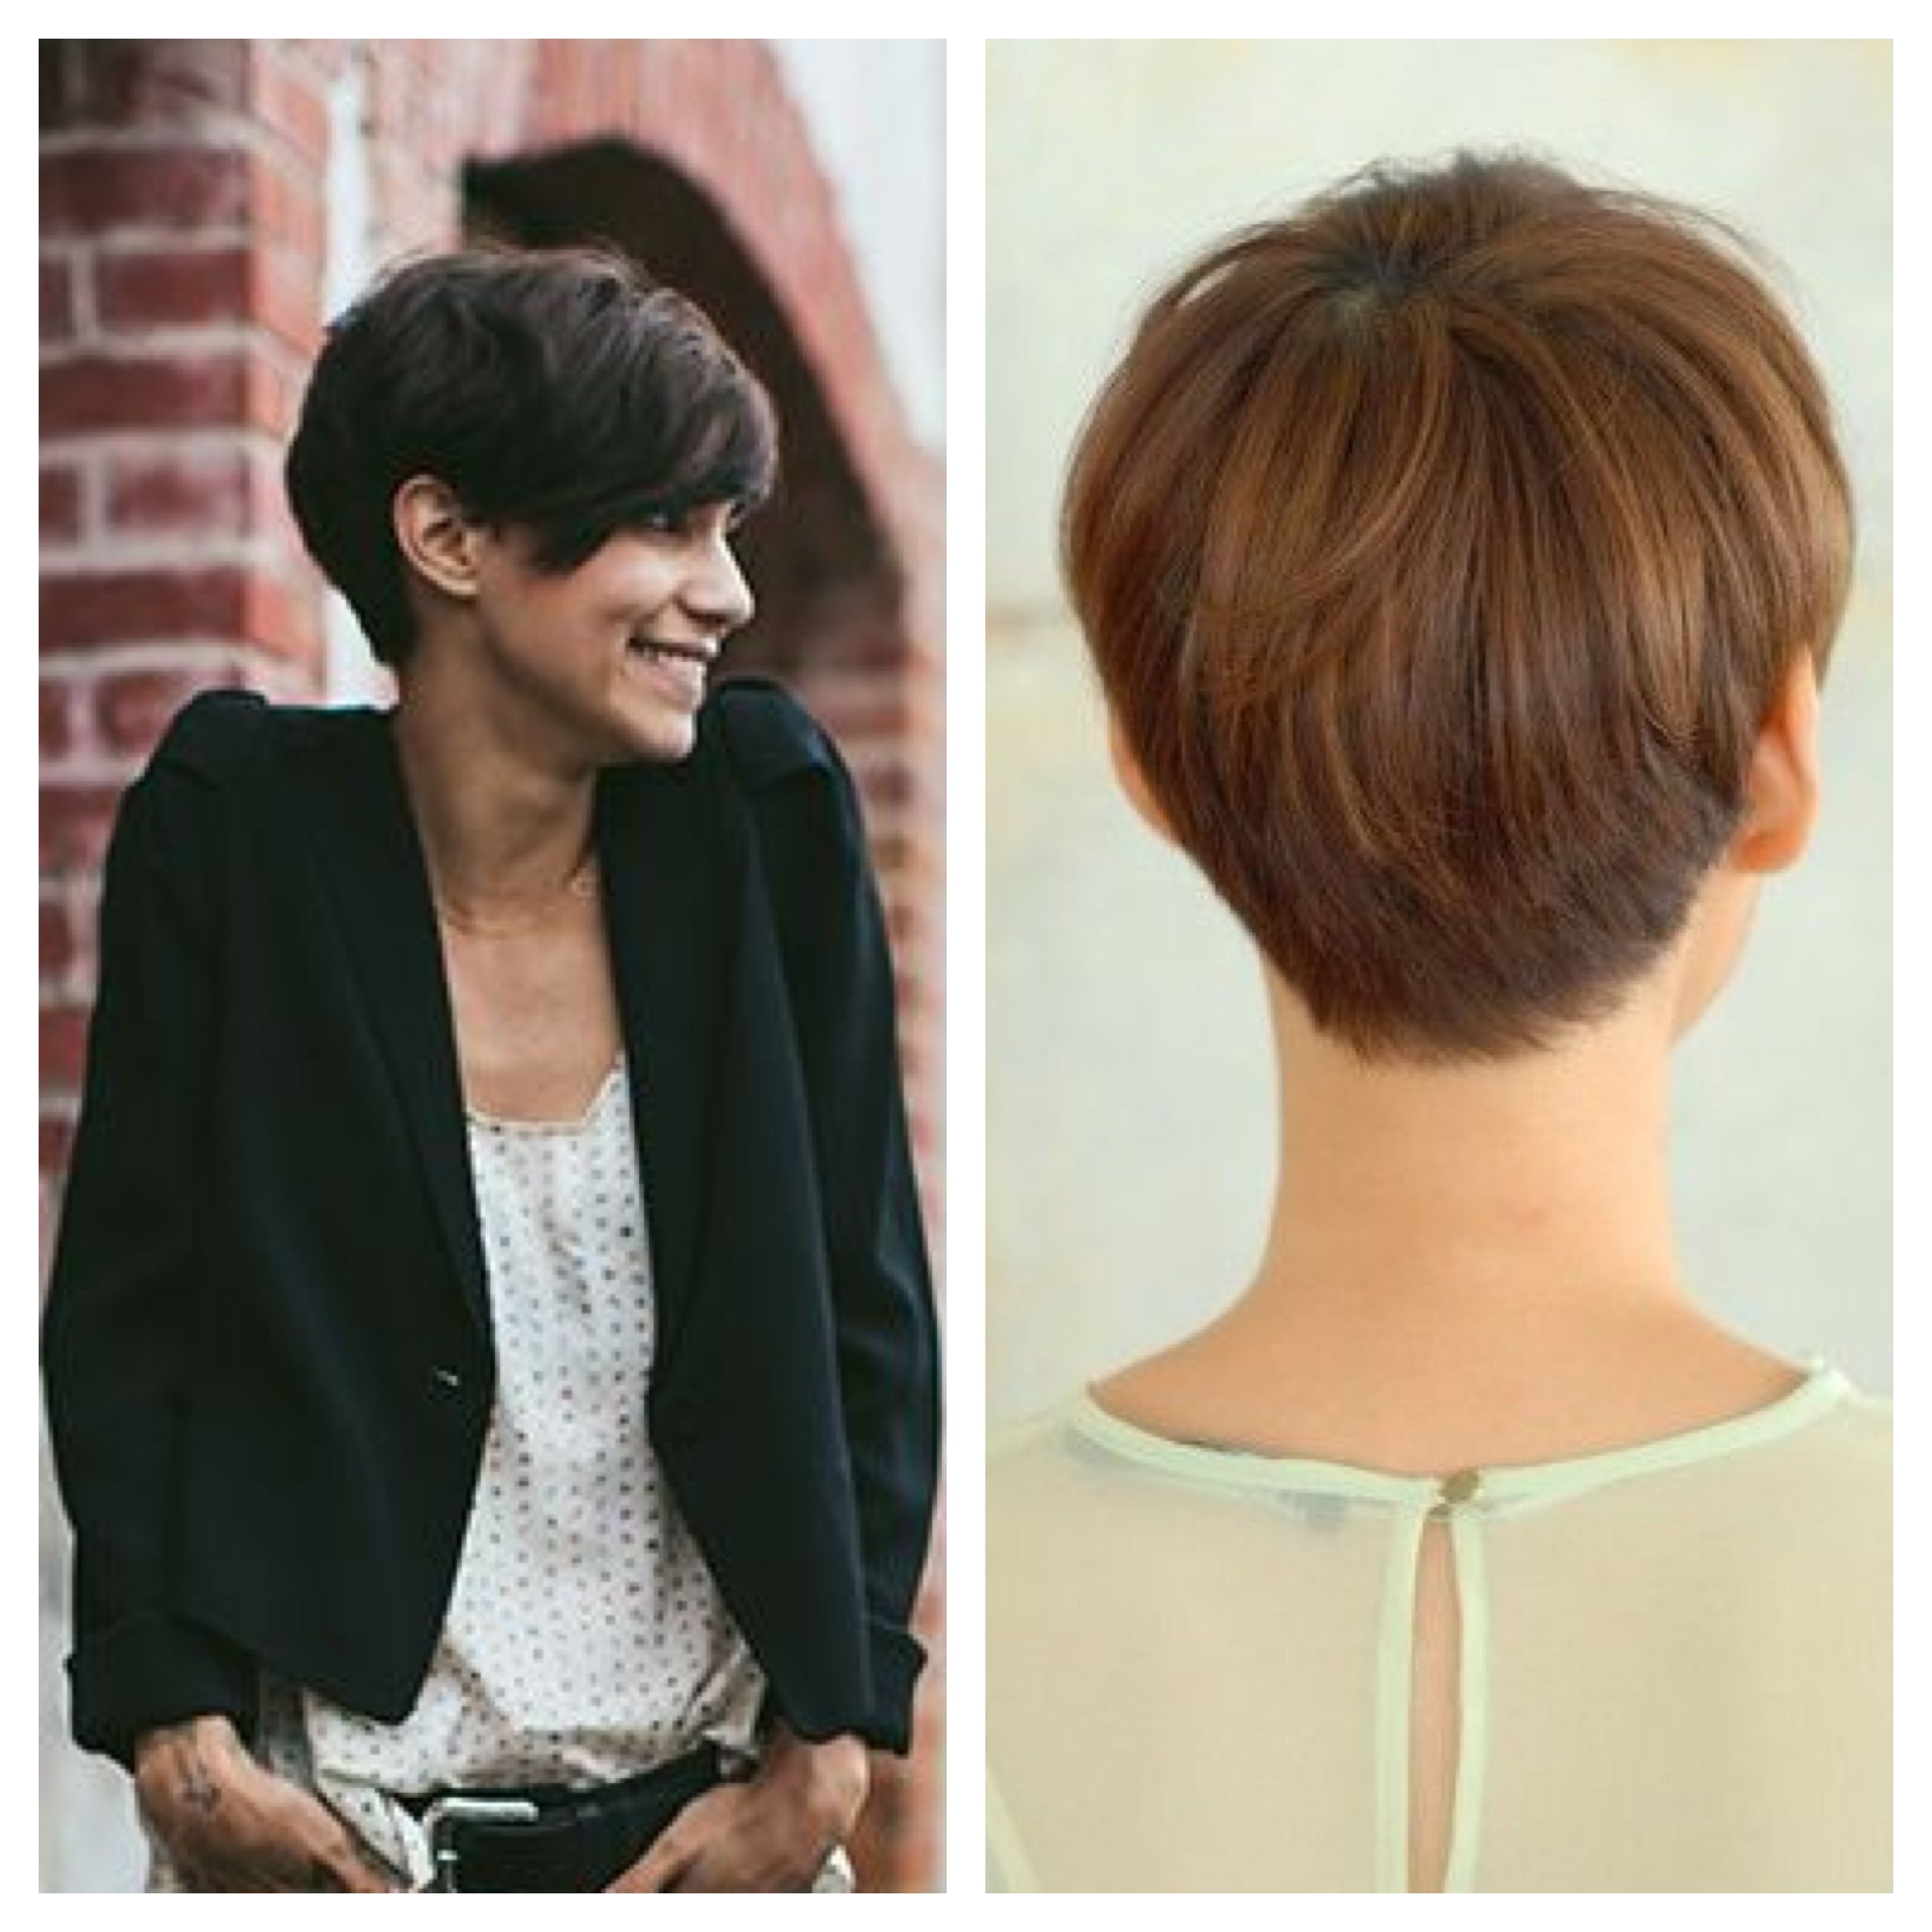 My potential future when I'm finally sick of growing out my hair. #tomboyhairstyles